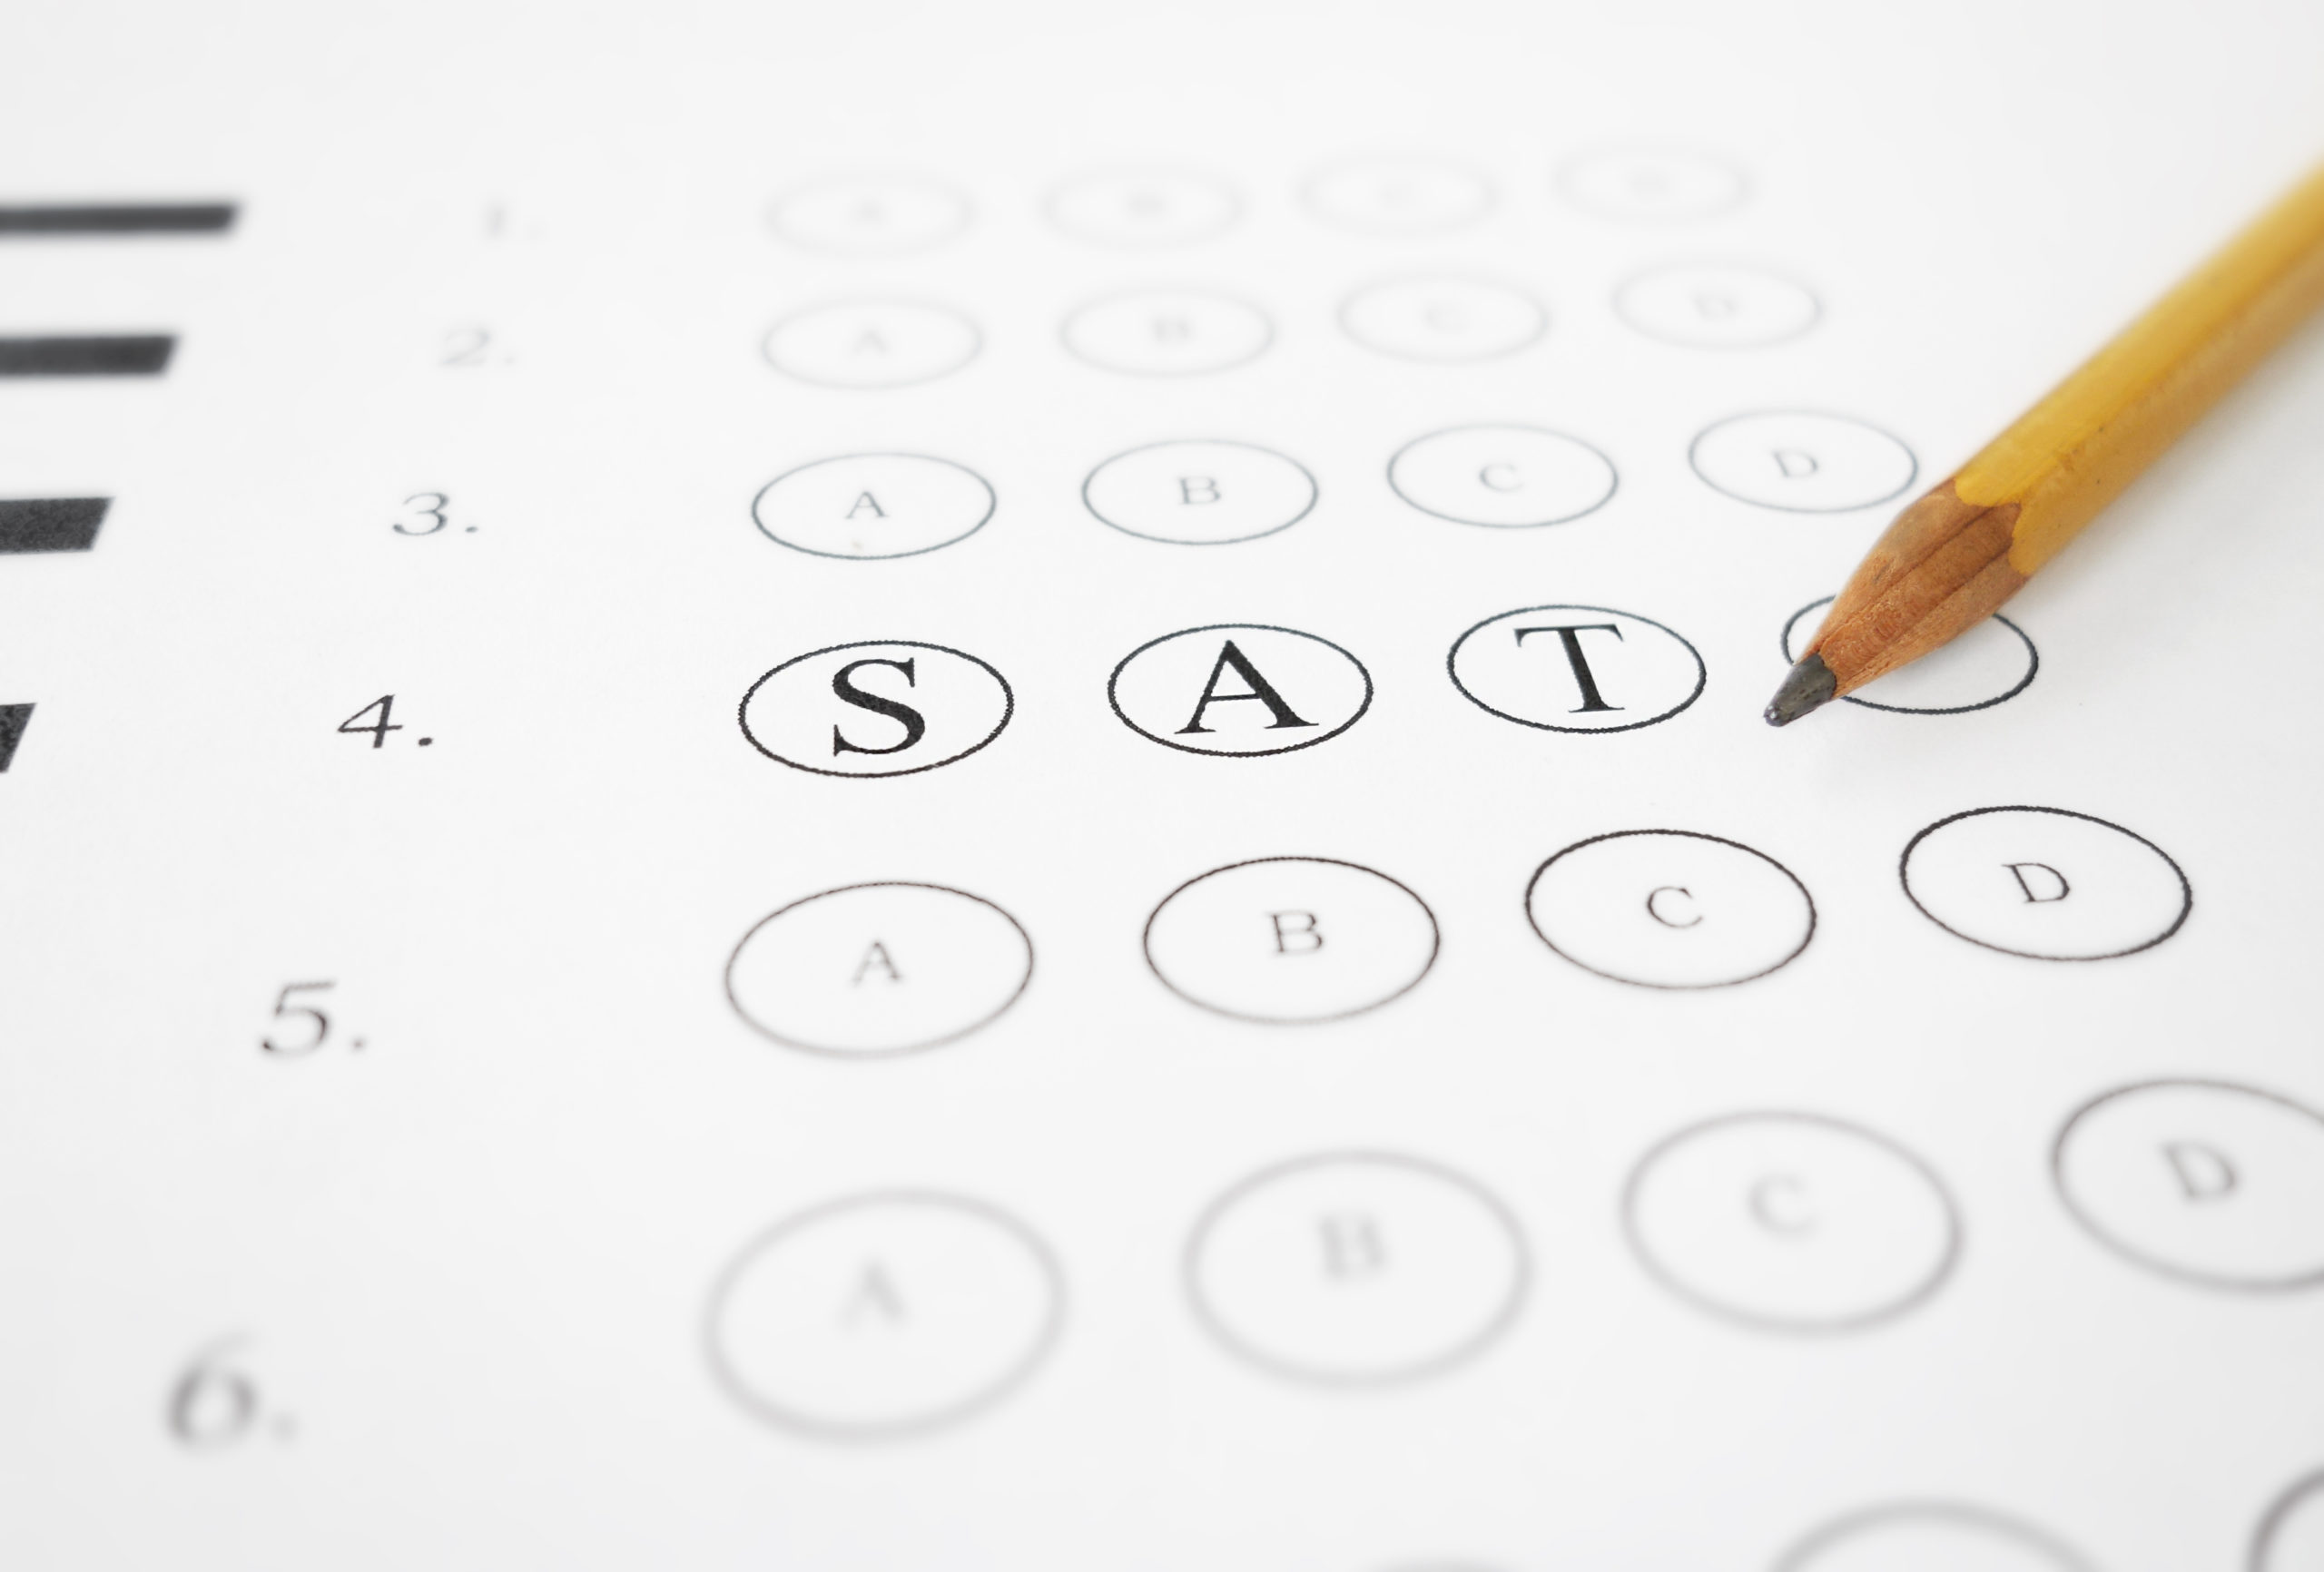 College board has abandoned SAT test online plans.